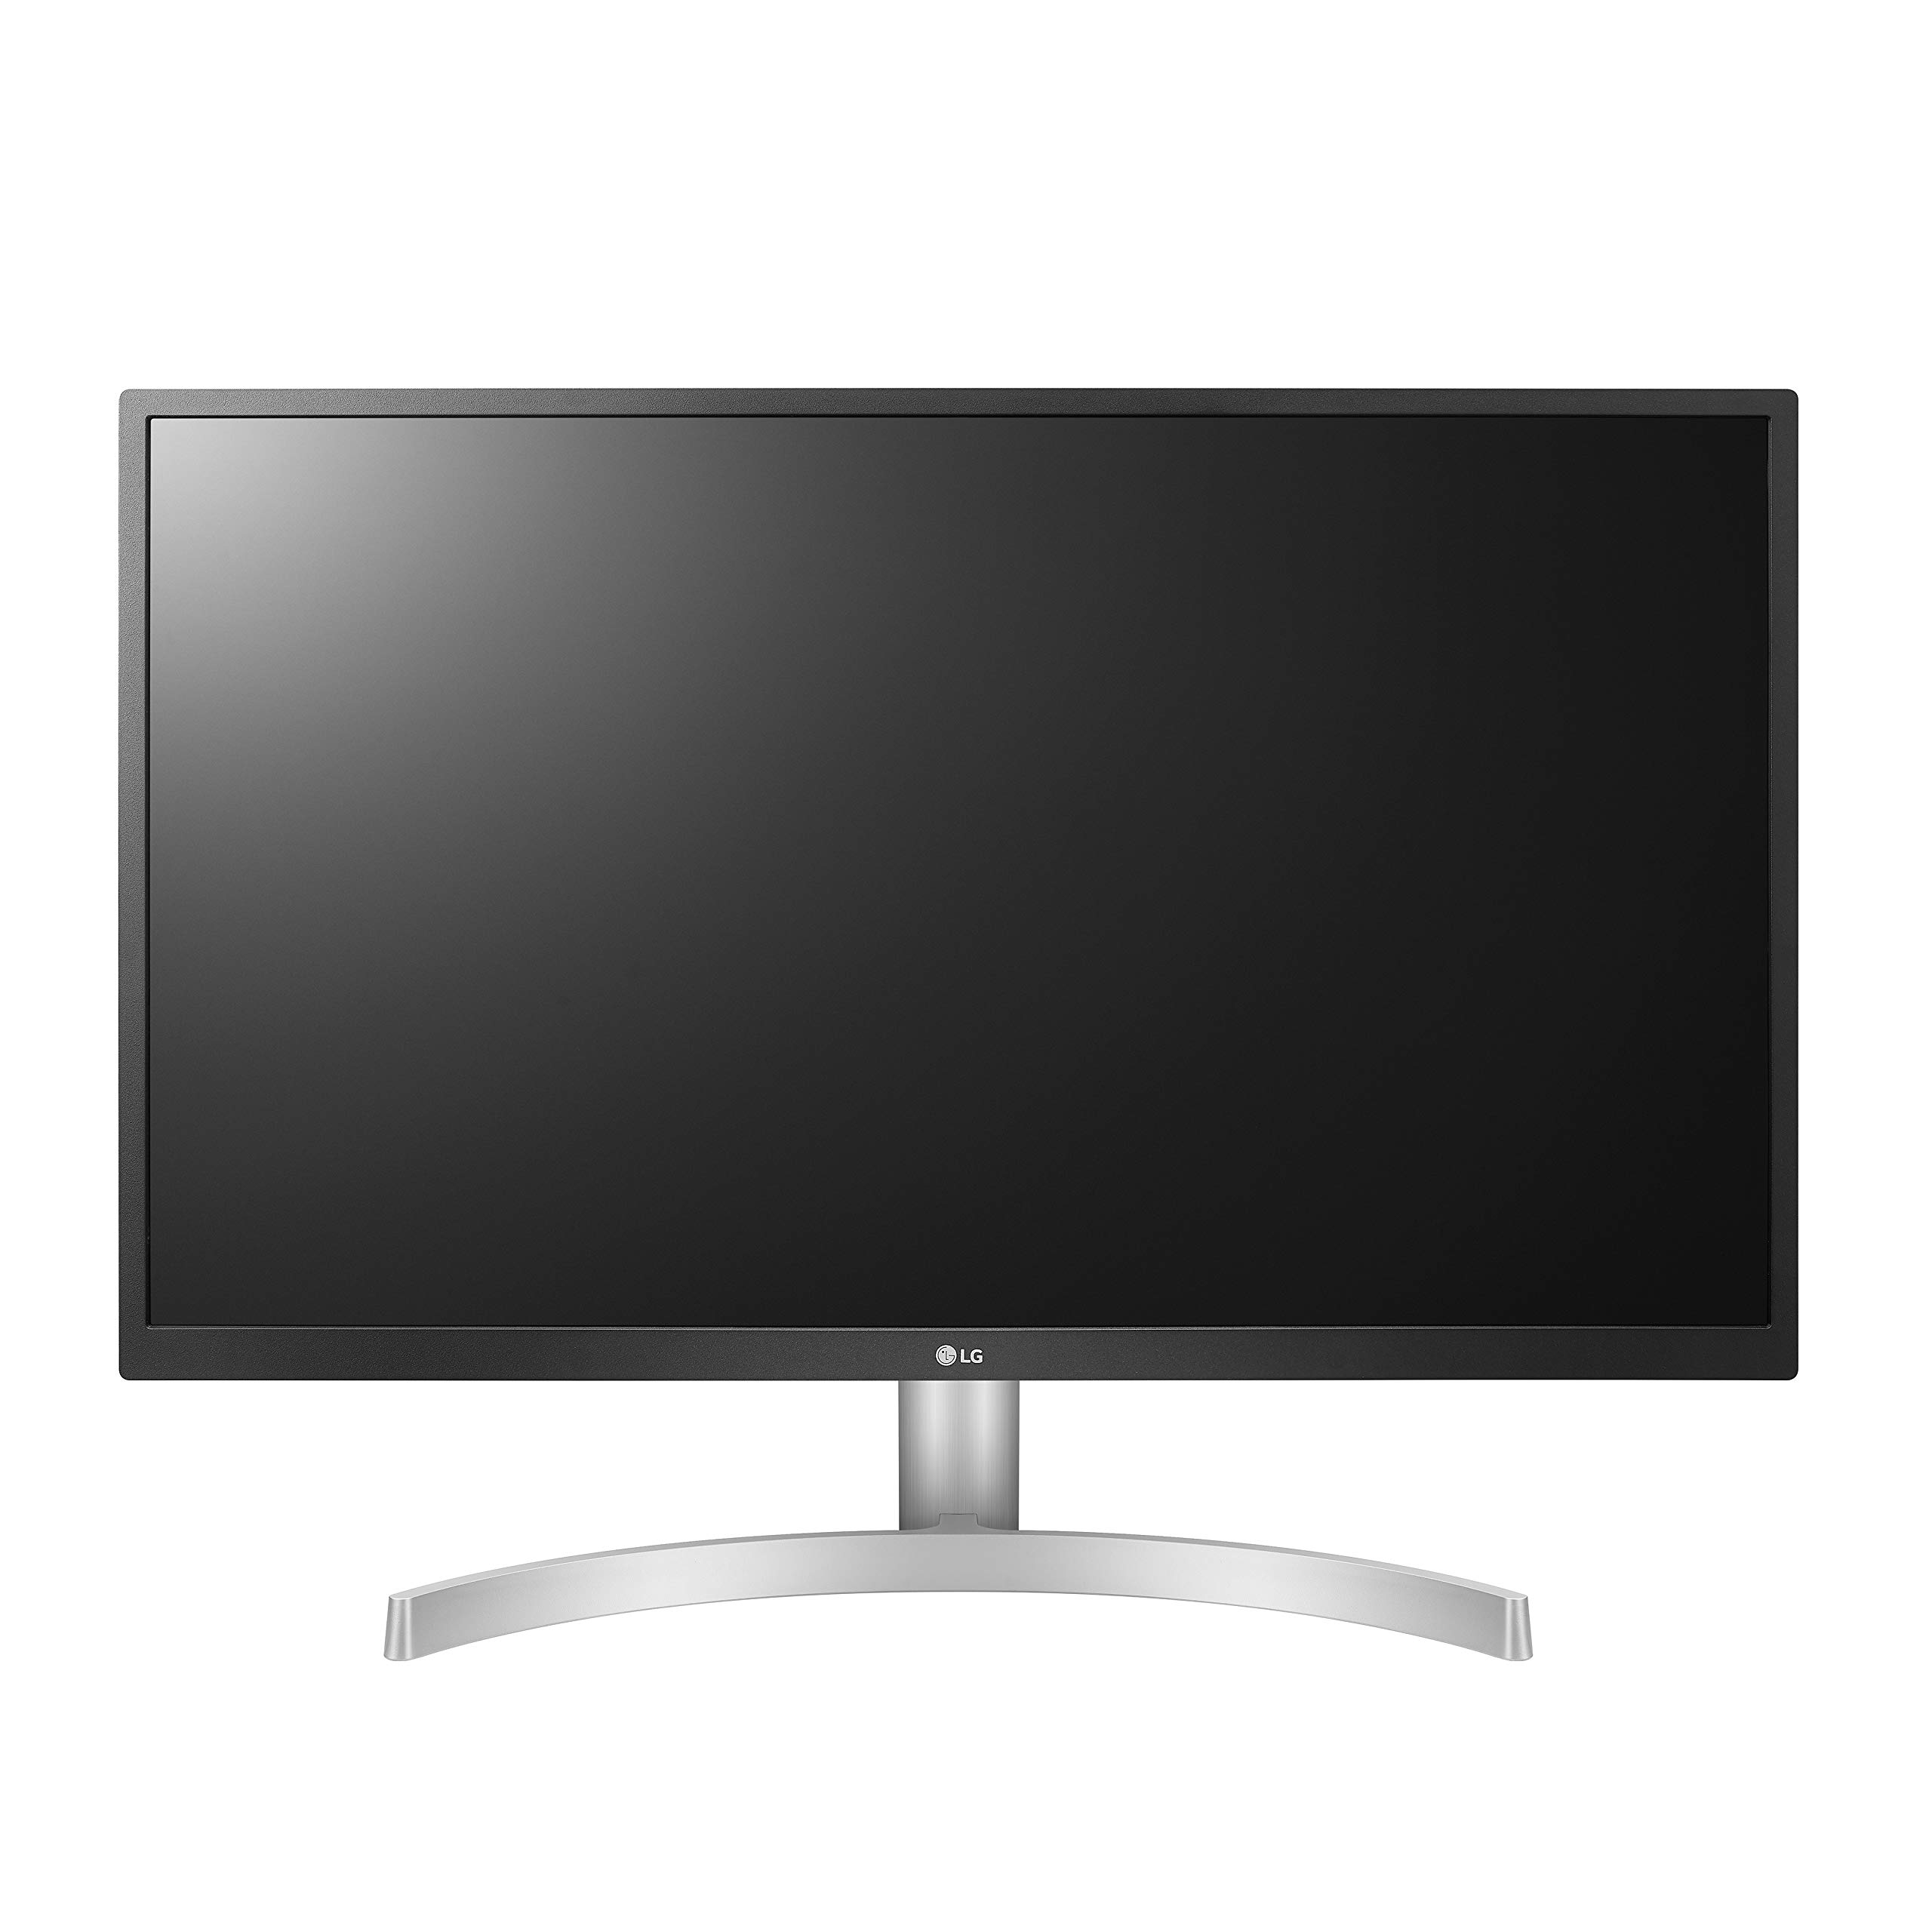 LG 27UL500-W 27-Inch UHD (3840 x 2160) IPS Monitor with Radeon Freesync Technology and HDR10, White by LG (Image #6)